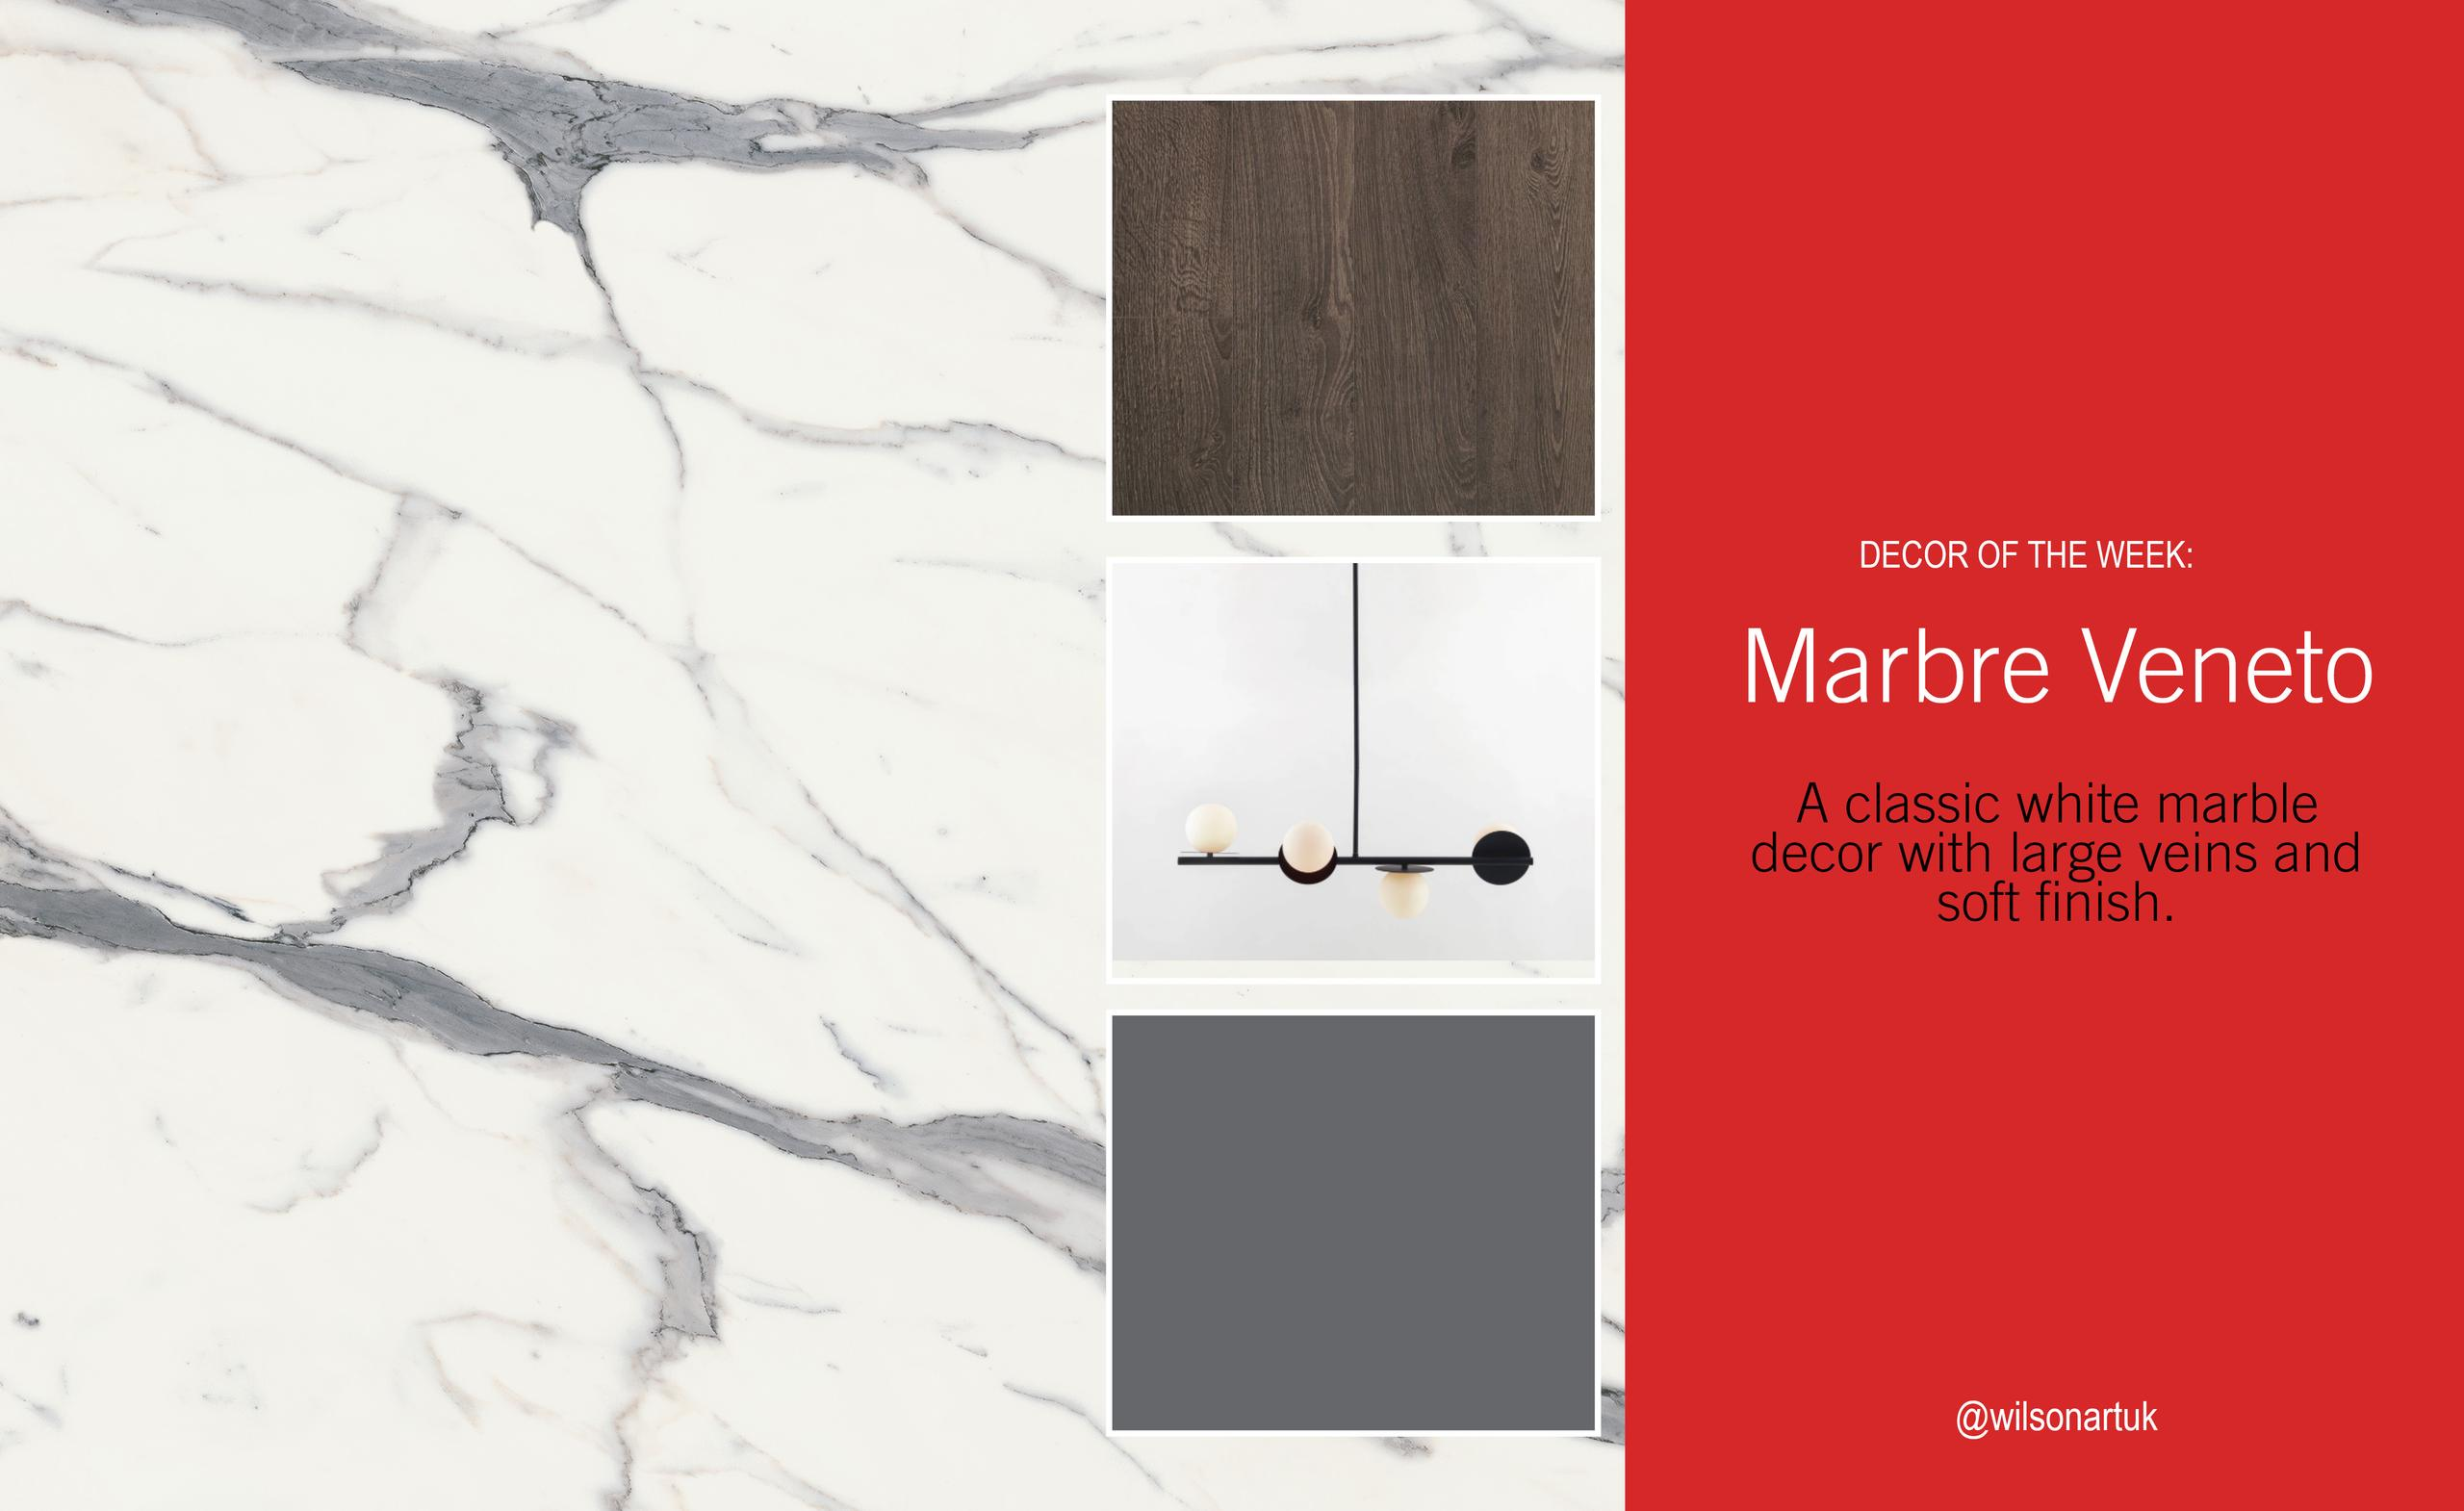 Decor of the Week: Marbre Veneto